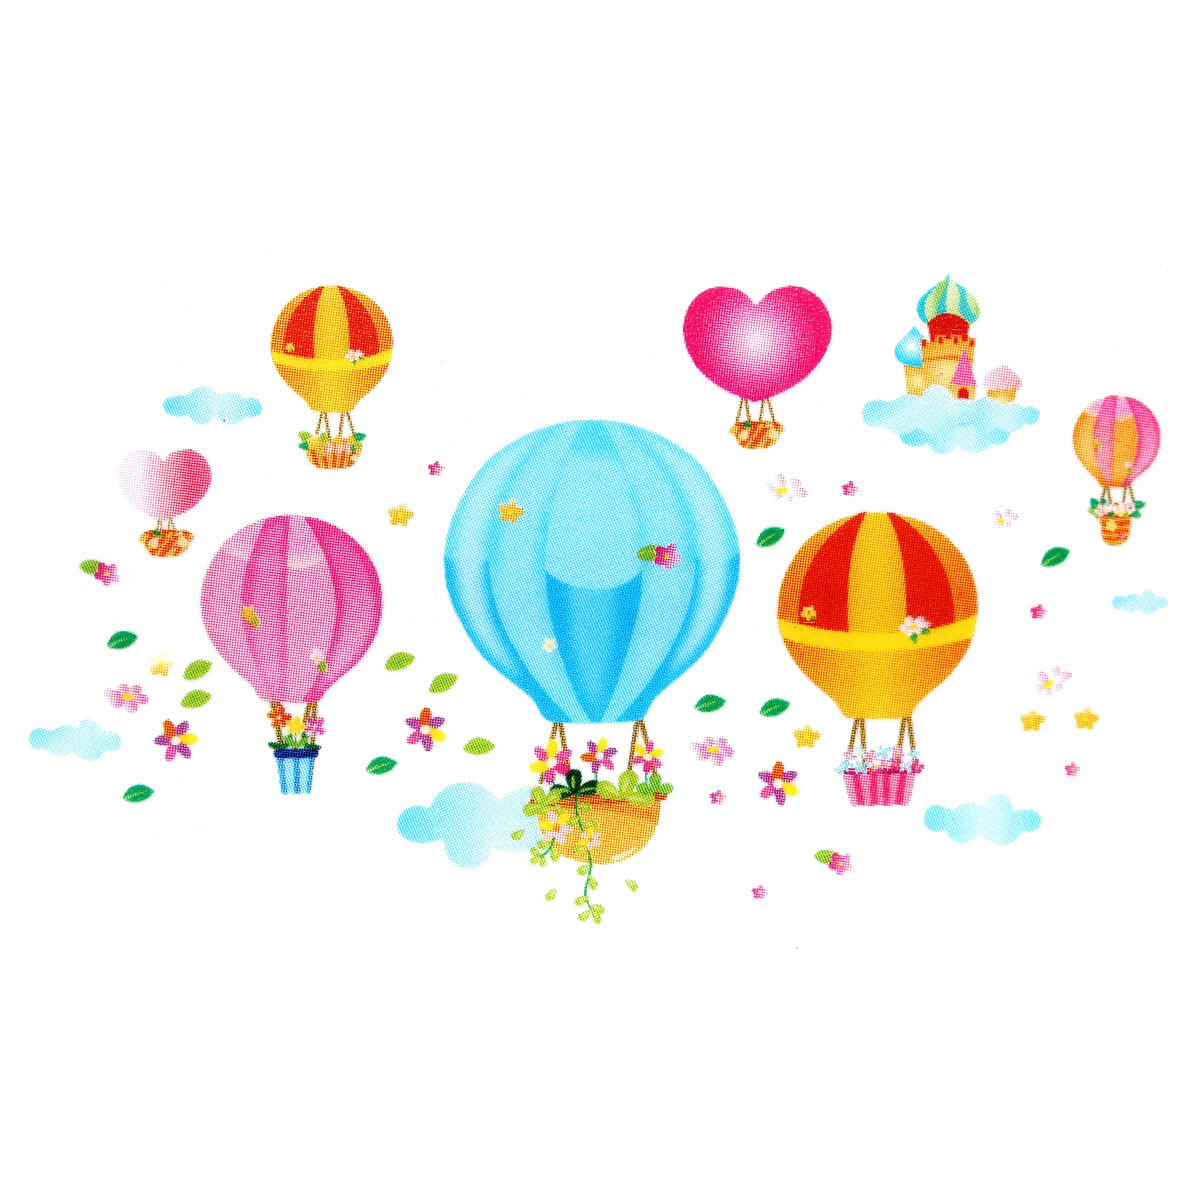 Children Kids Baby Cartoon Fire Balloon Bedroom DIY Adhesive Art Wallpaper Sticker Removable Decal Decoration